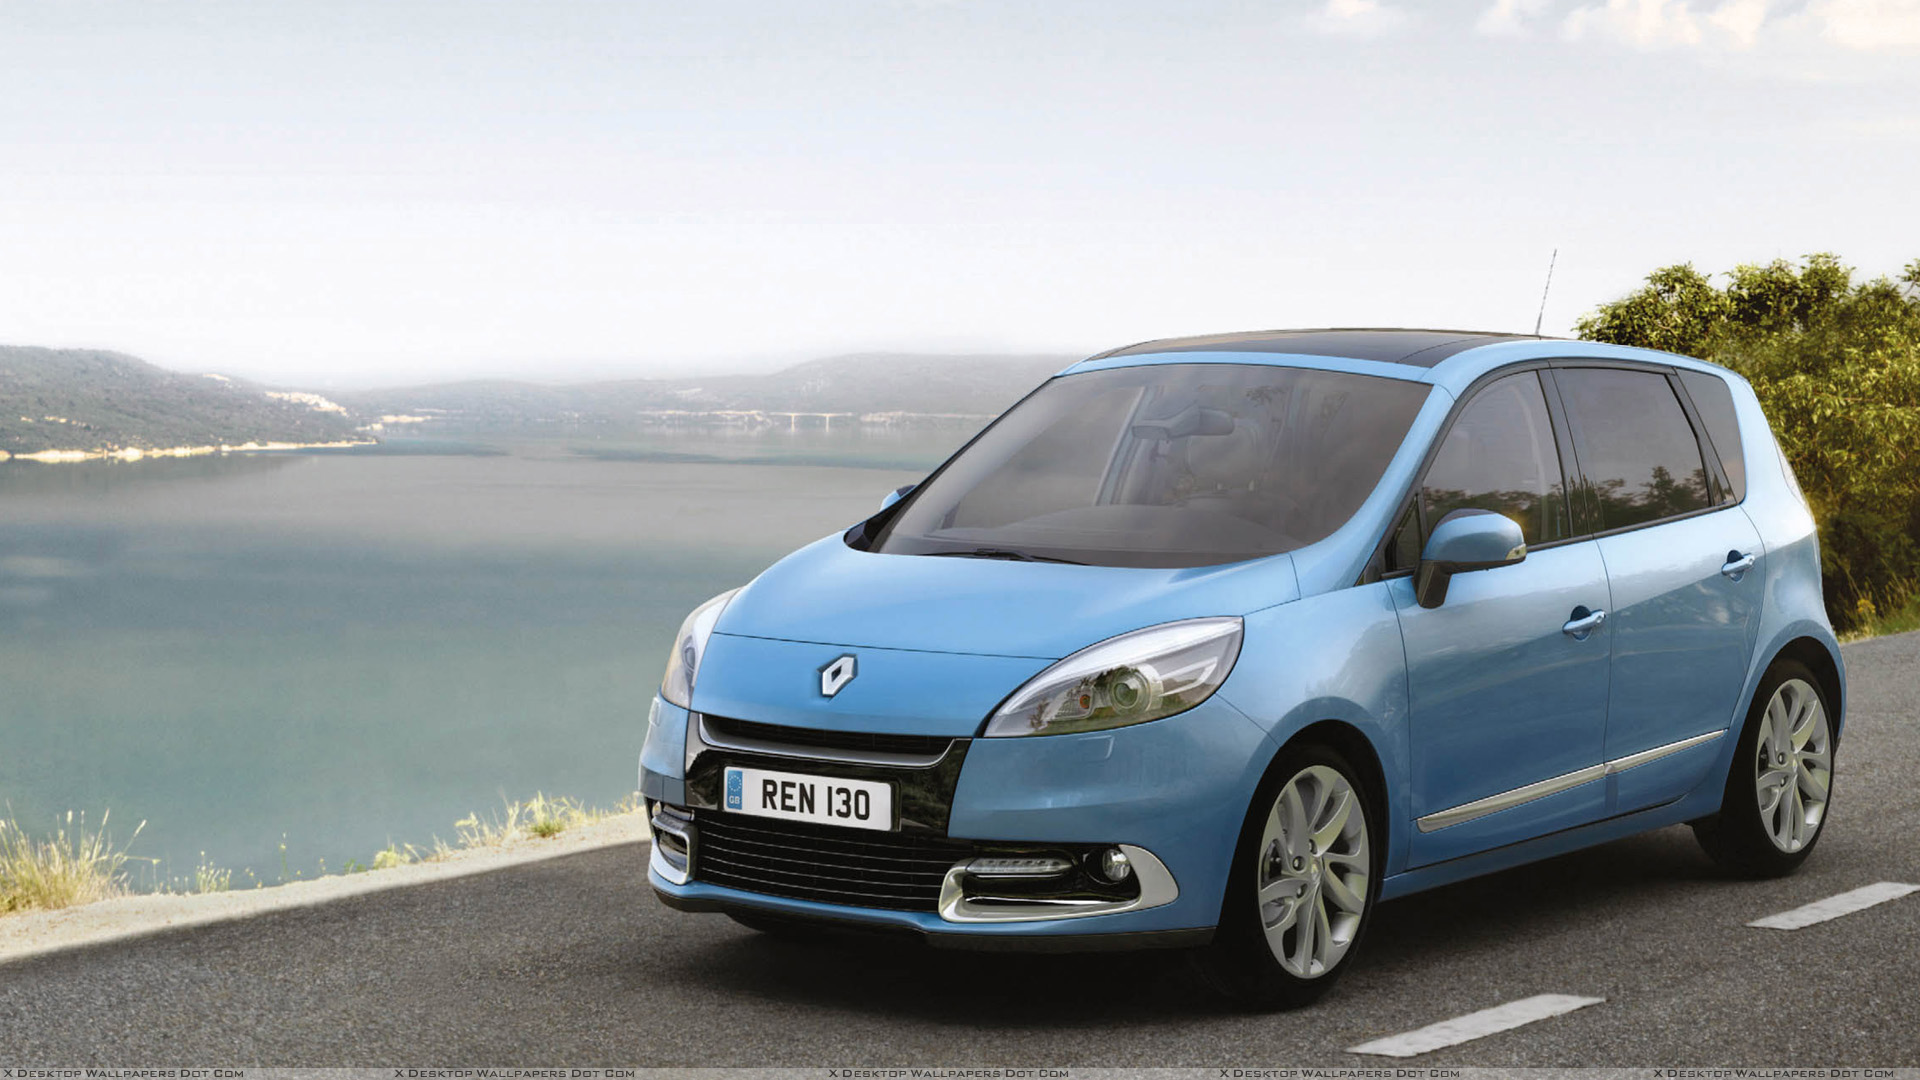 2012 renault scenic uk front side pose in blue wallpaper. Black Bedroom Furniture Sets. Home Design Ideas